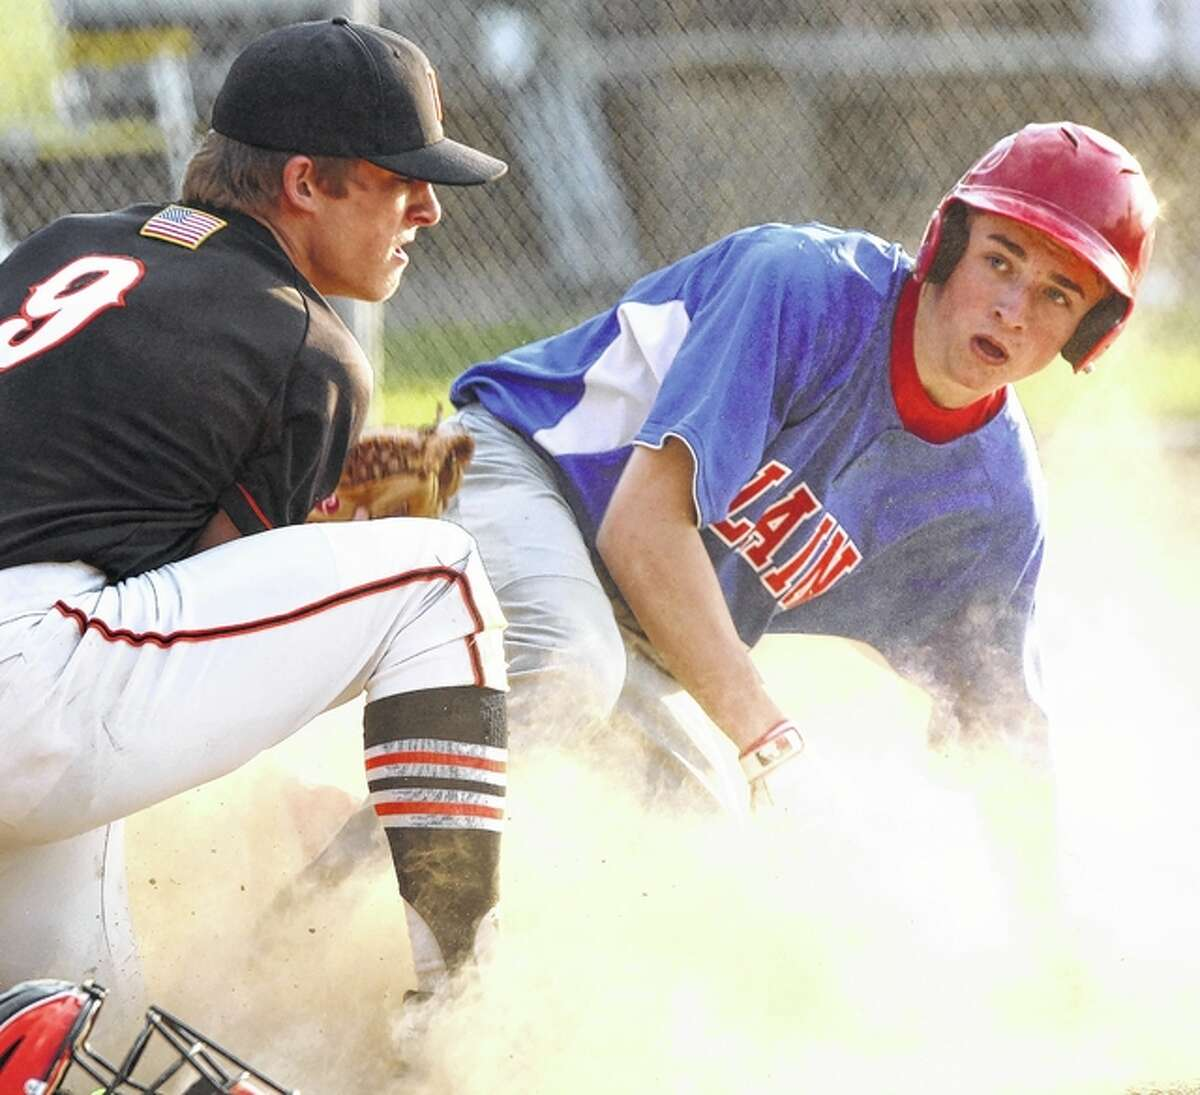 Beardstown pitcher Alec Taylor tags out a Pleasant Plains runner at home plate during the 10th inning of a game in Beardstown Friday afternoon.